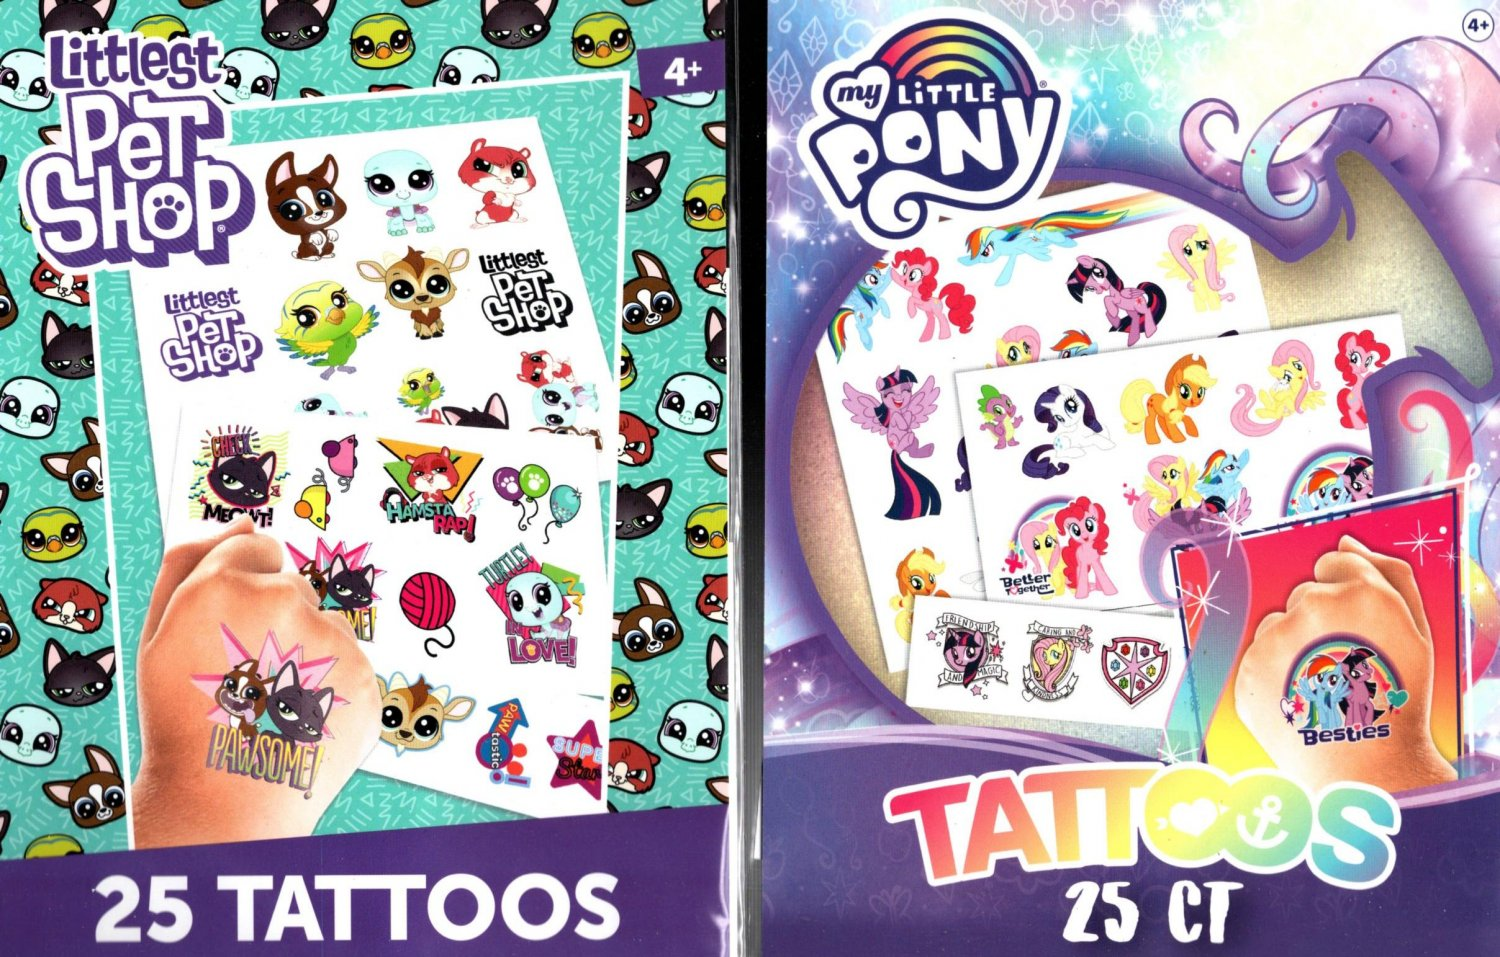 Littlest Pet Shop and My Little Pony - 25 Tattoo (Set of 2 Pack 50 Tattoos)